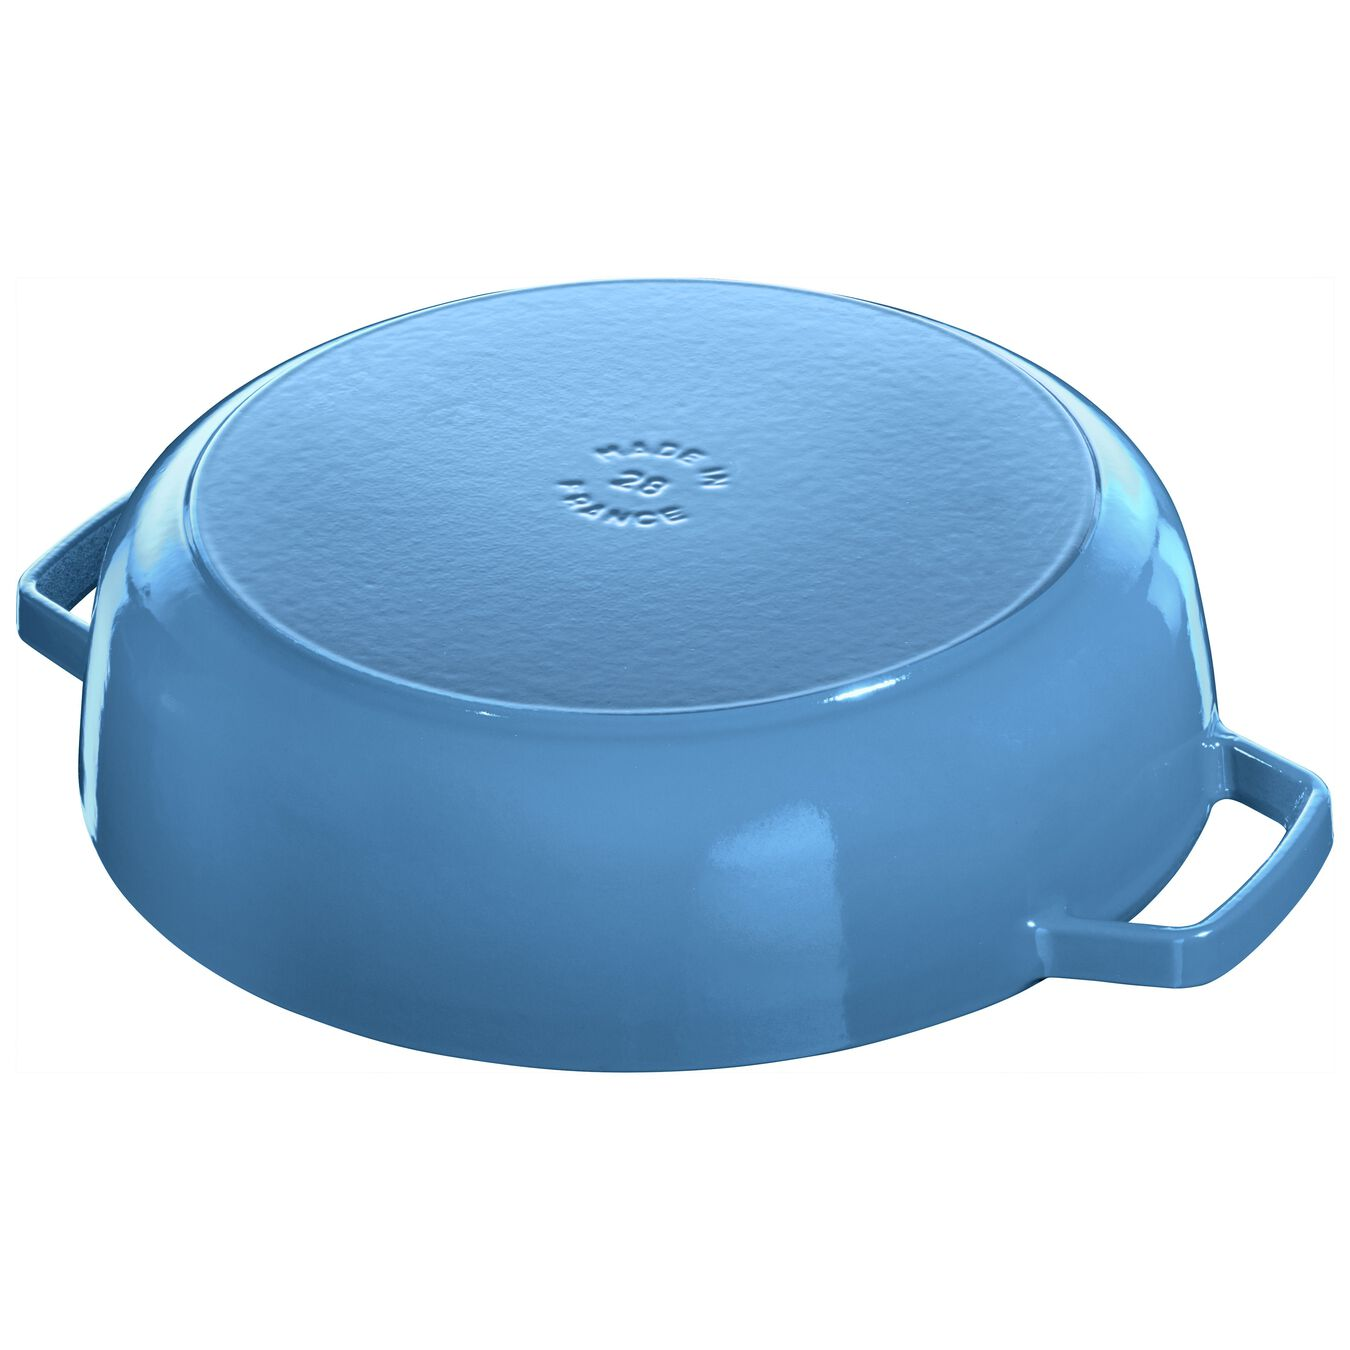 3.75 l Cast iron round Saute pan Chistera, ice-blue,,large 5